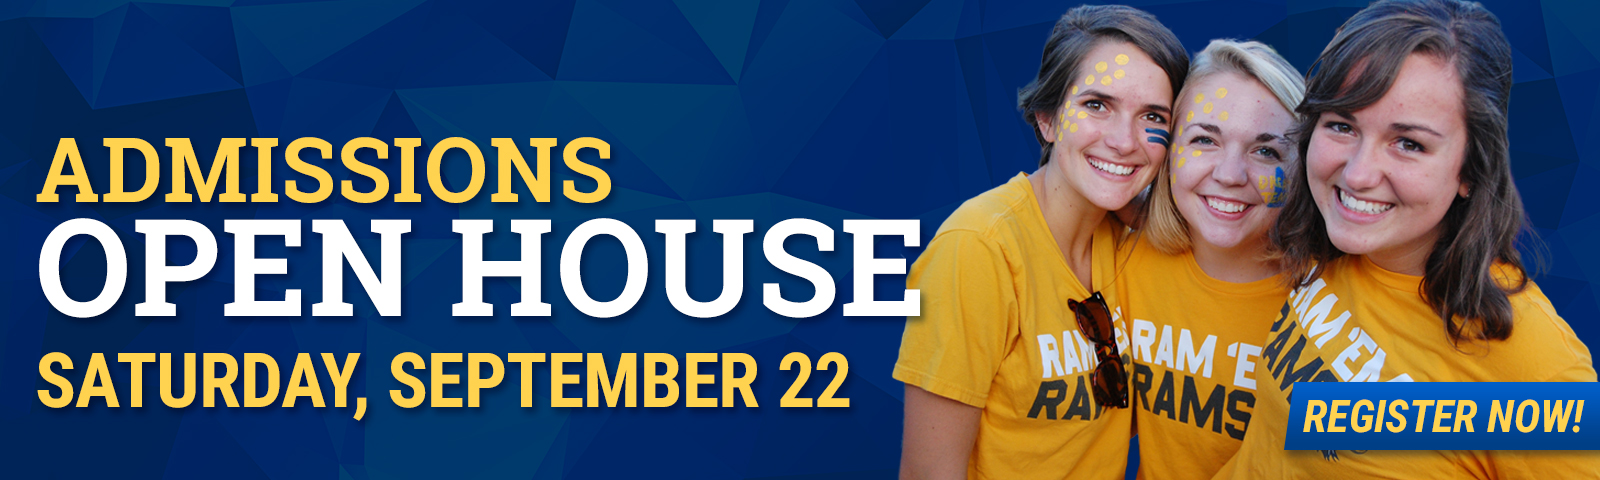 Open House for undergraduate students is Saturday, Sept. 22.